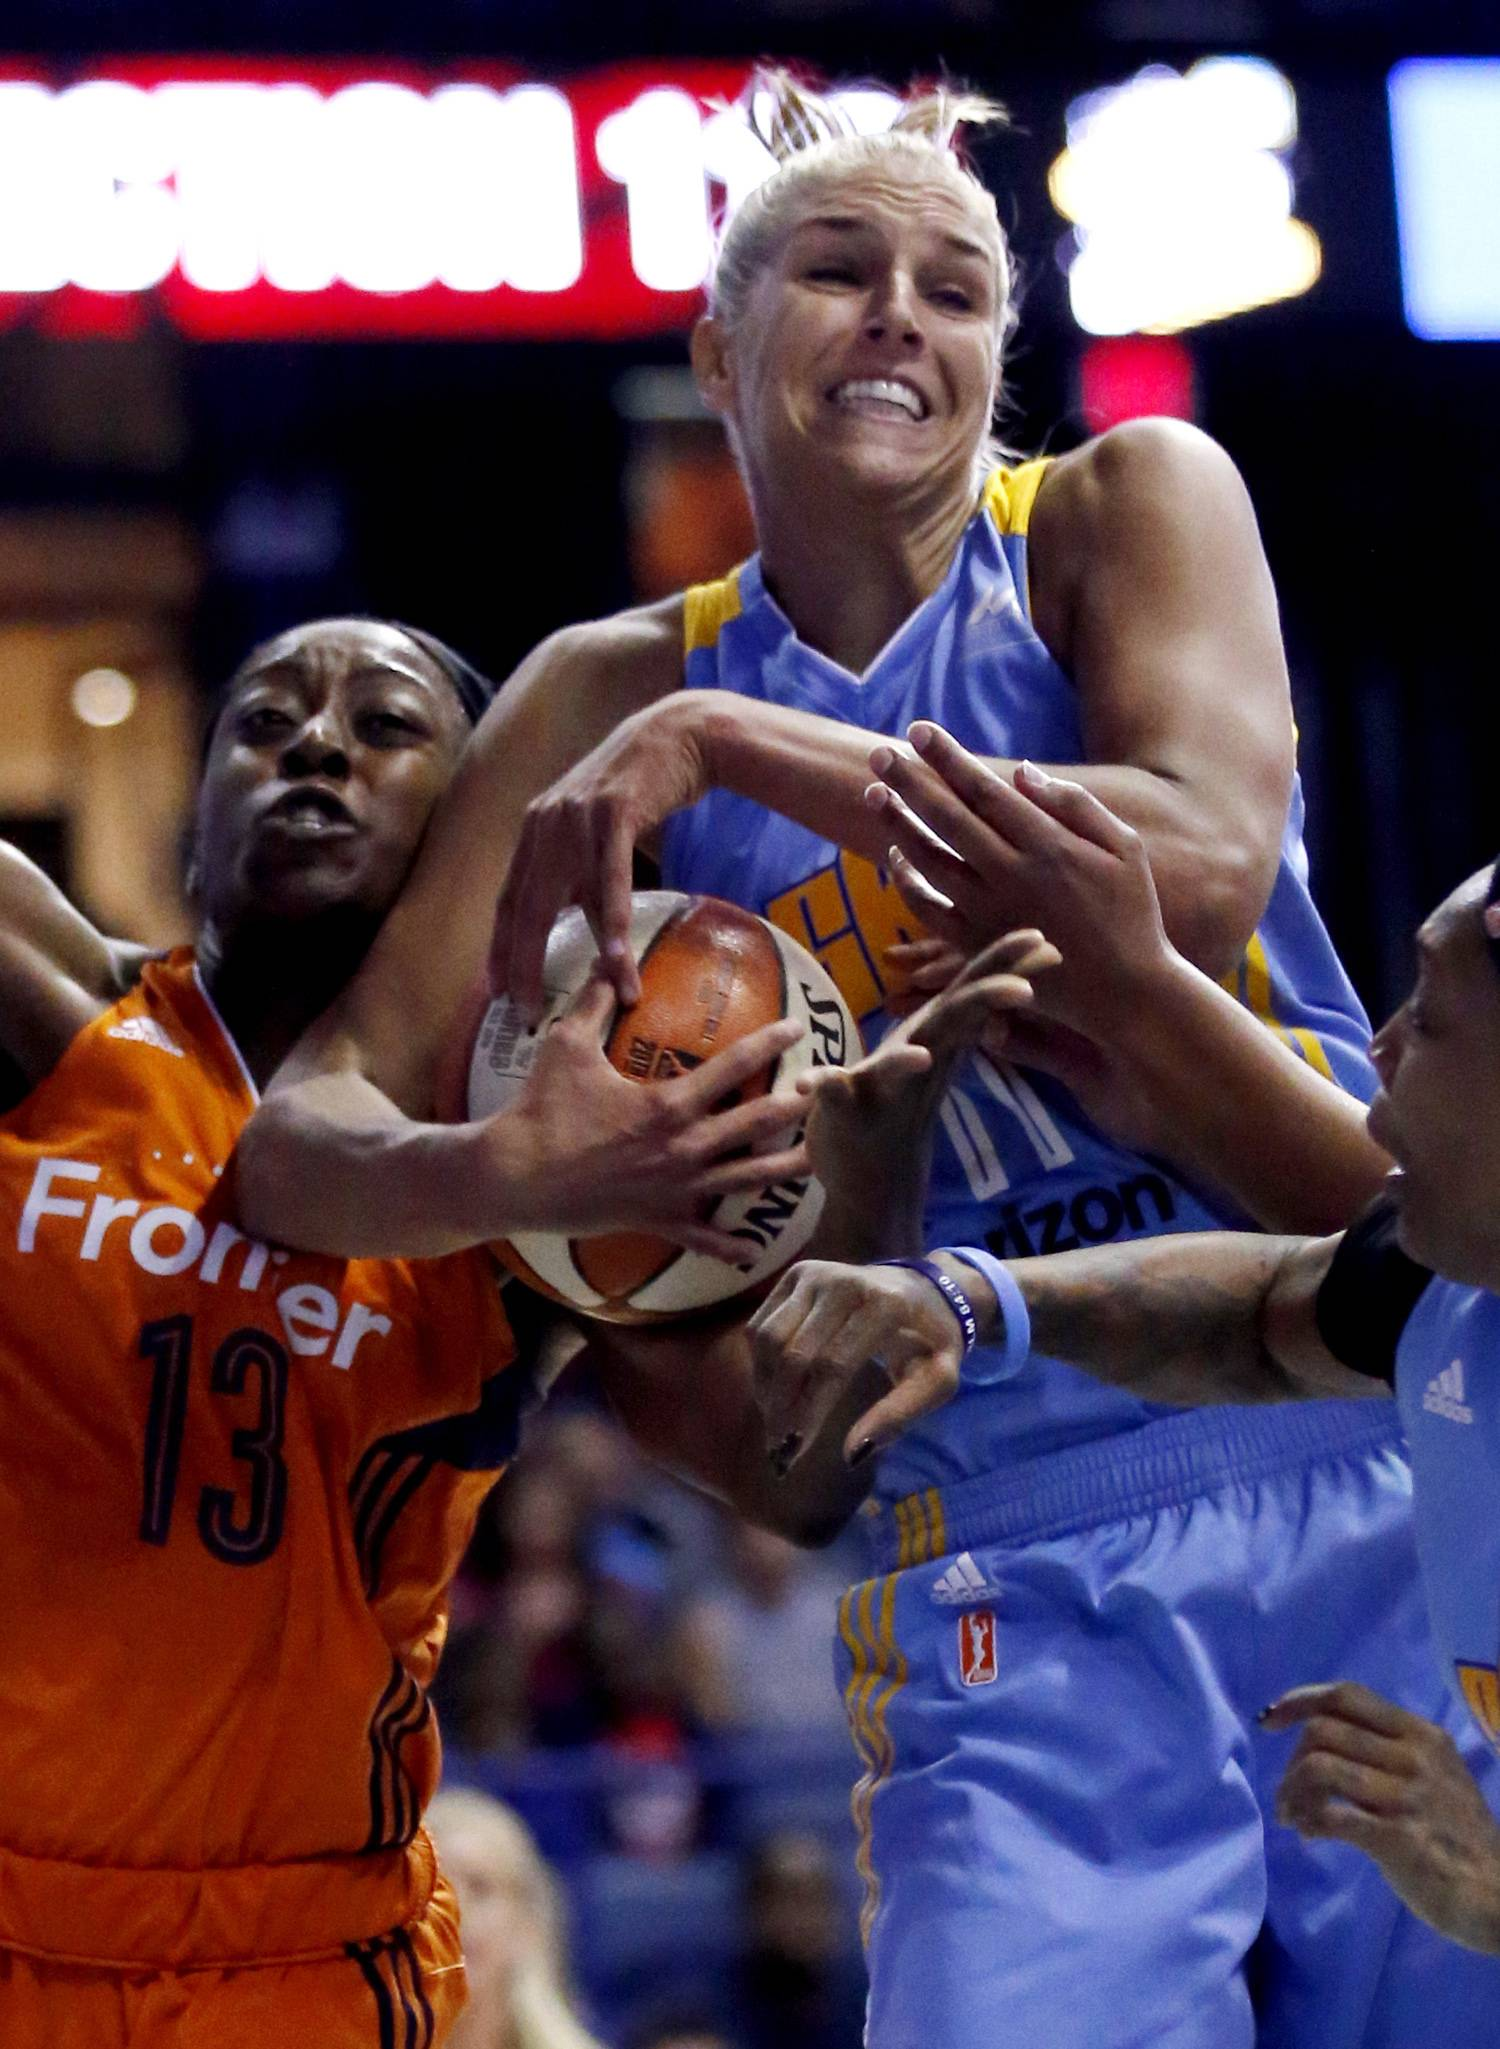 Chicago Sky forward Elena Delle Donne, right, and Connecticut Sun center Chiney Ogwumike compete for a rebound during the first half of a WNBA basketball game Friday, July 22, 2016, in Rosemont, Ill.